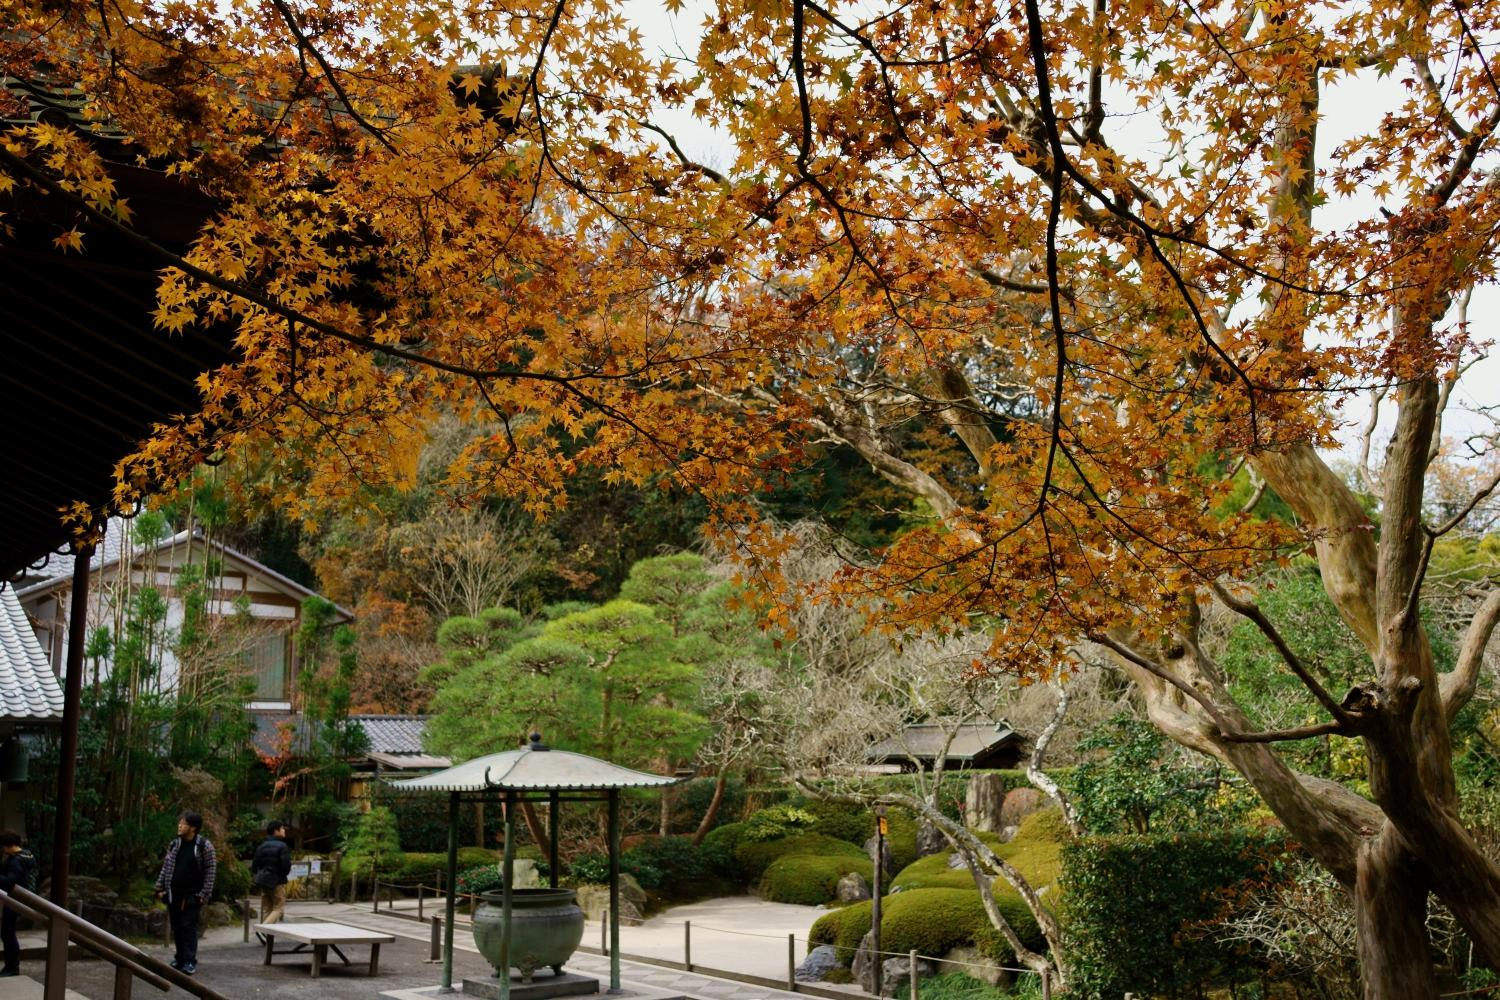 Autumn leaves in Meigetsuin temple - Ambassadors Japan